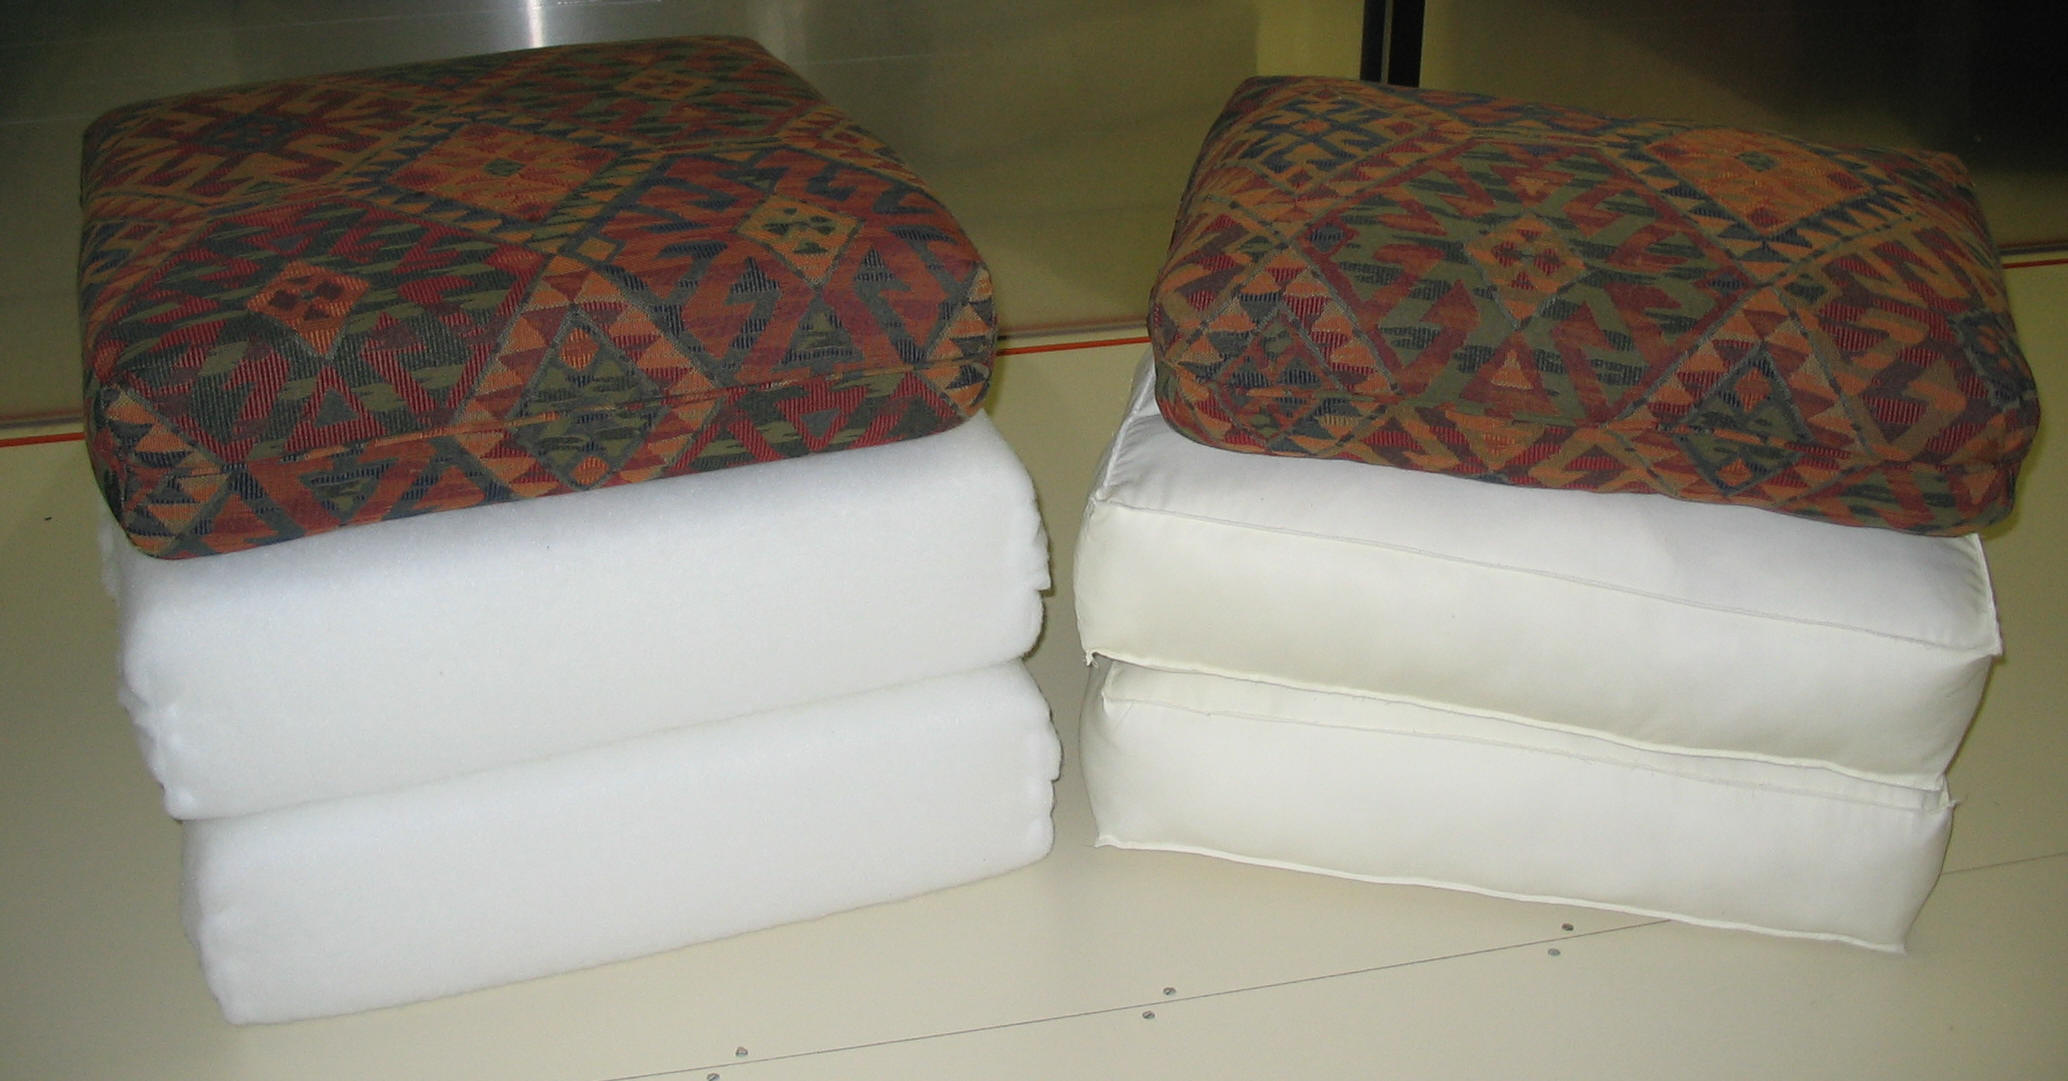 High Density Upholstery Foam for Best Cushions Material Ideas: High Density Upholstery Foam | Foam Padding Upholstery | Discount Upholstery Foam